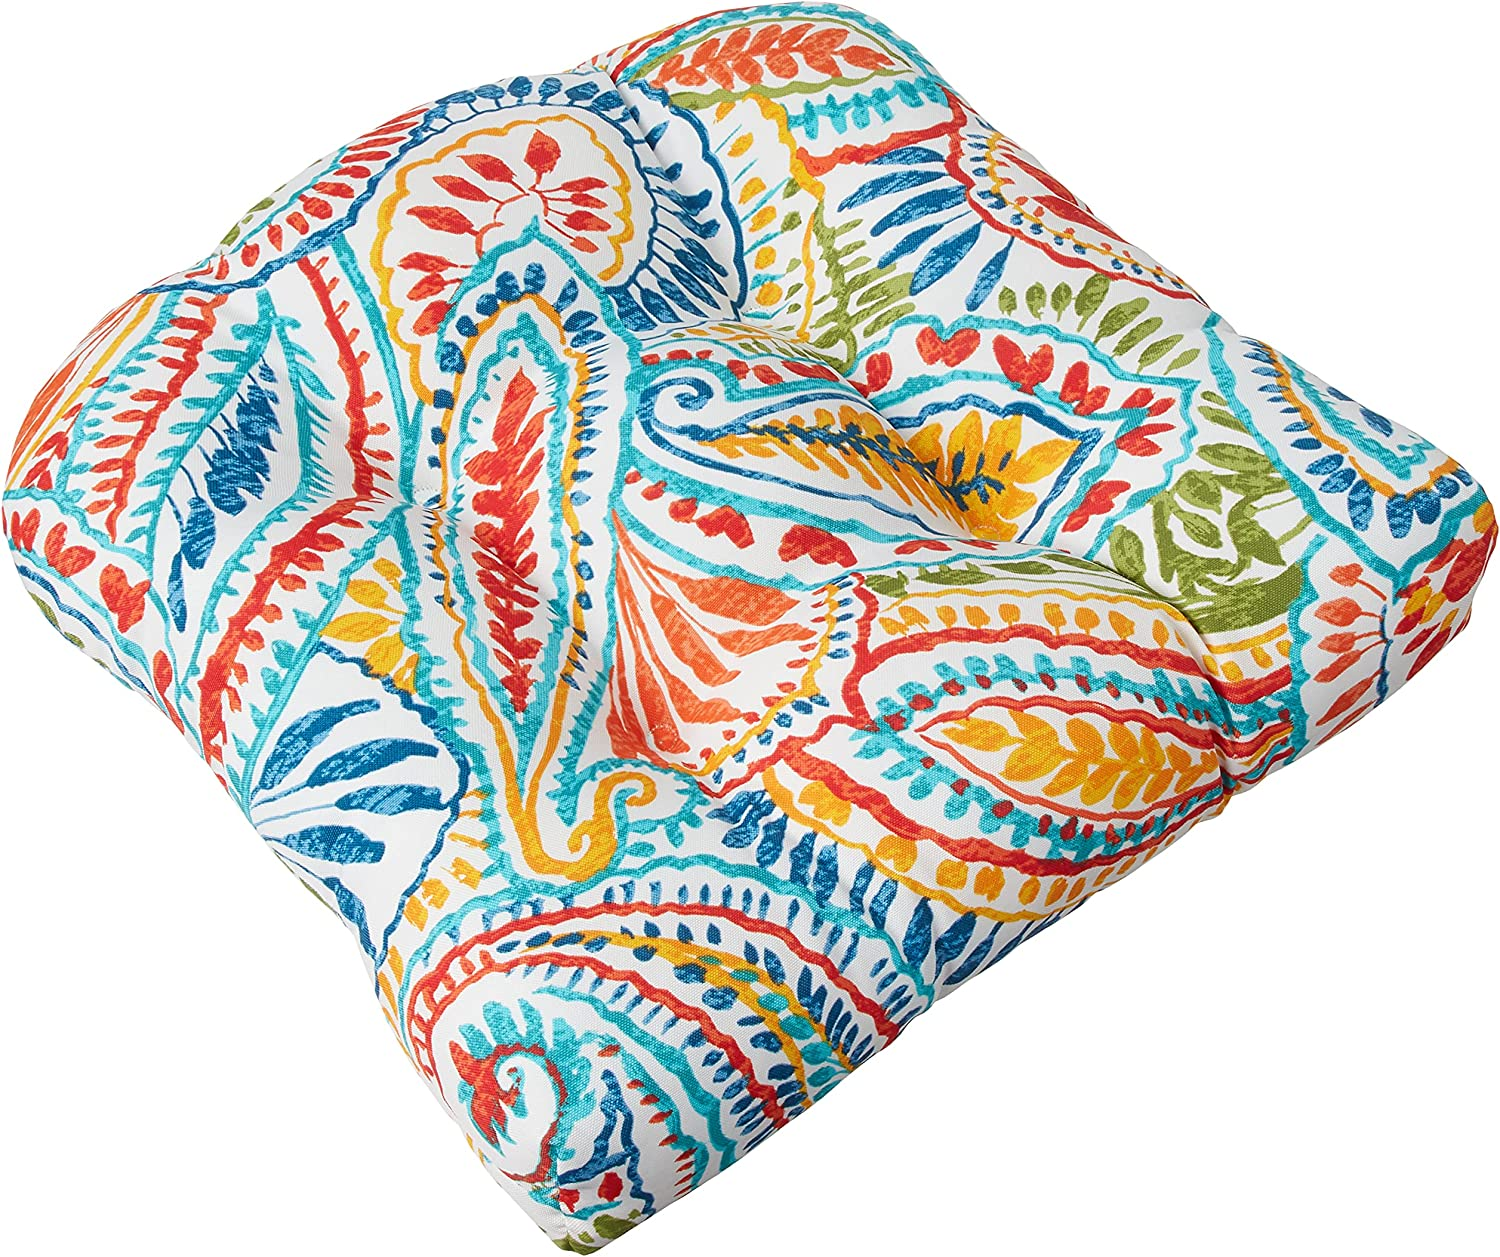 Pillow Perfect 566450 Outdoor Indoor Cushions Spring Super beauty product restock quality top! new work Seat Ummi Tufted